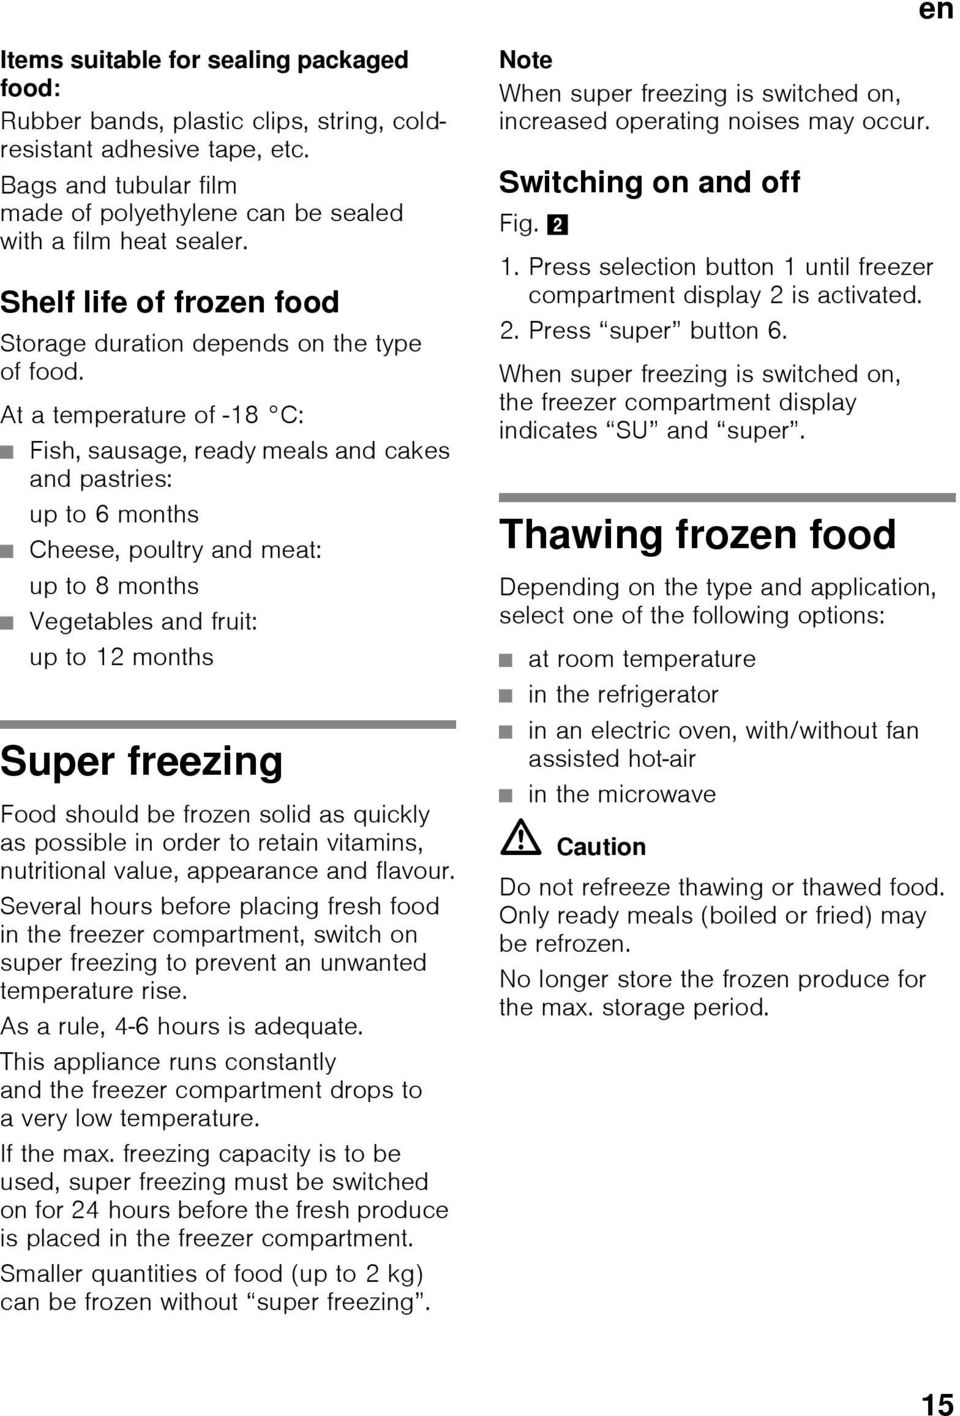 At a temperature of -18 C: Fish, sausage, ready meals and cakes and pastries: up to 6 months Cheese, poultry and meat: up to 8 months Vegetables and fruit: up to 12 months Super freezing Food should